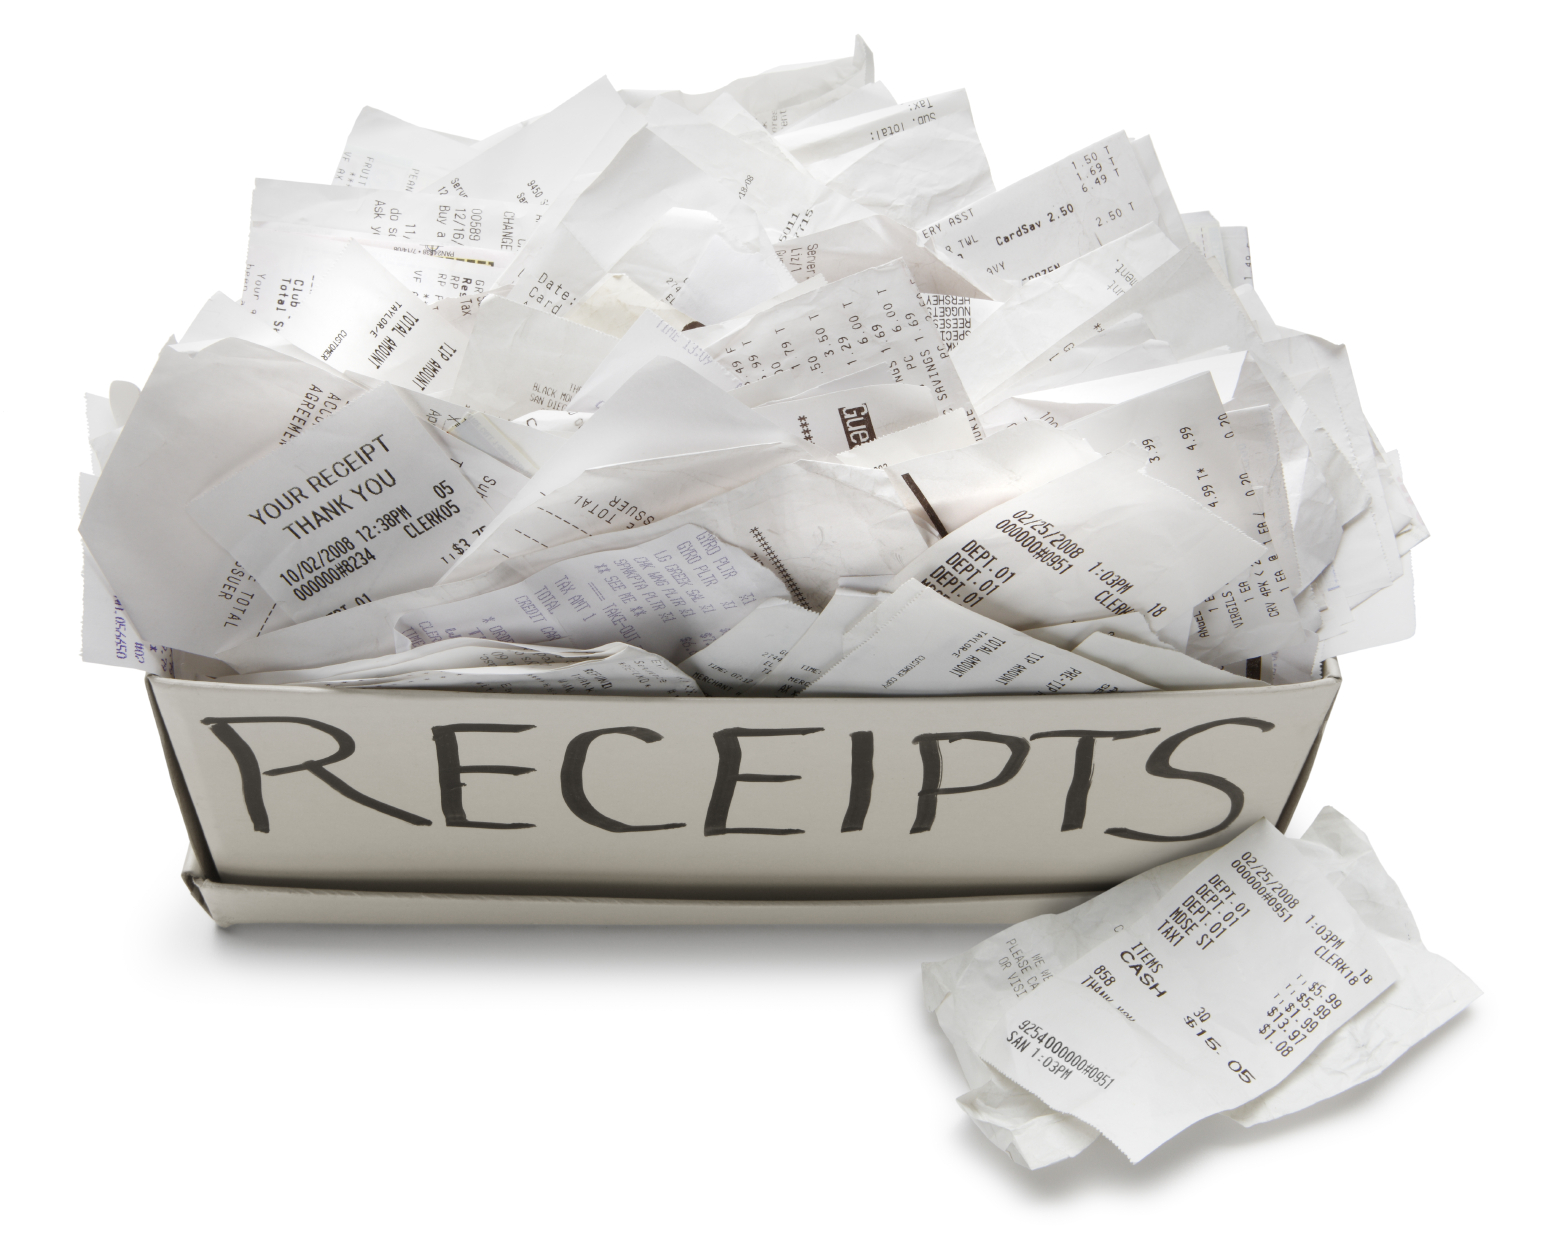 No More Business Receipts!